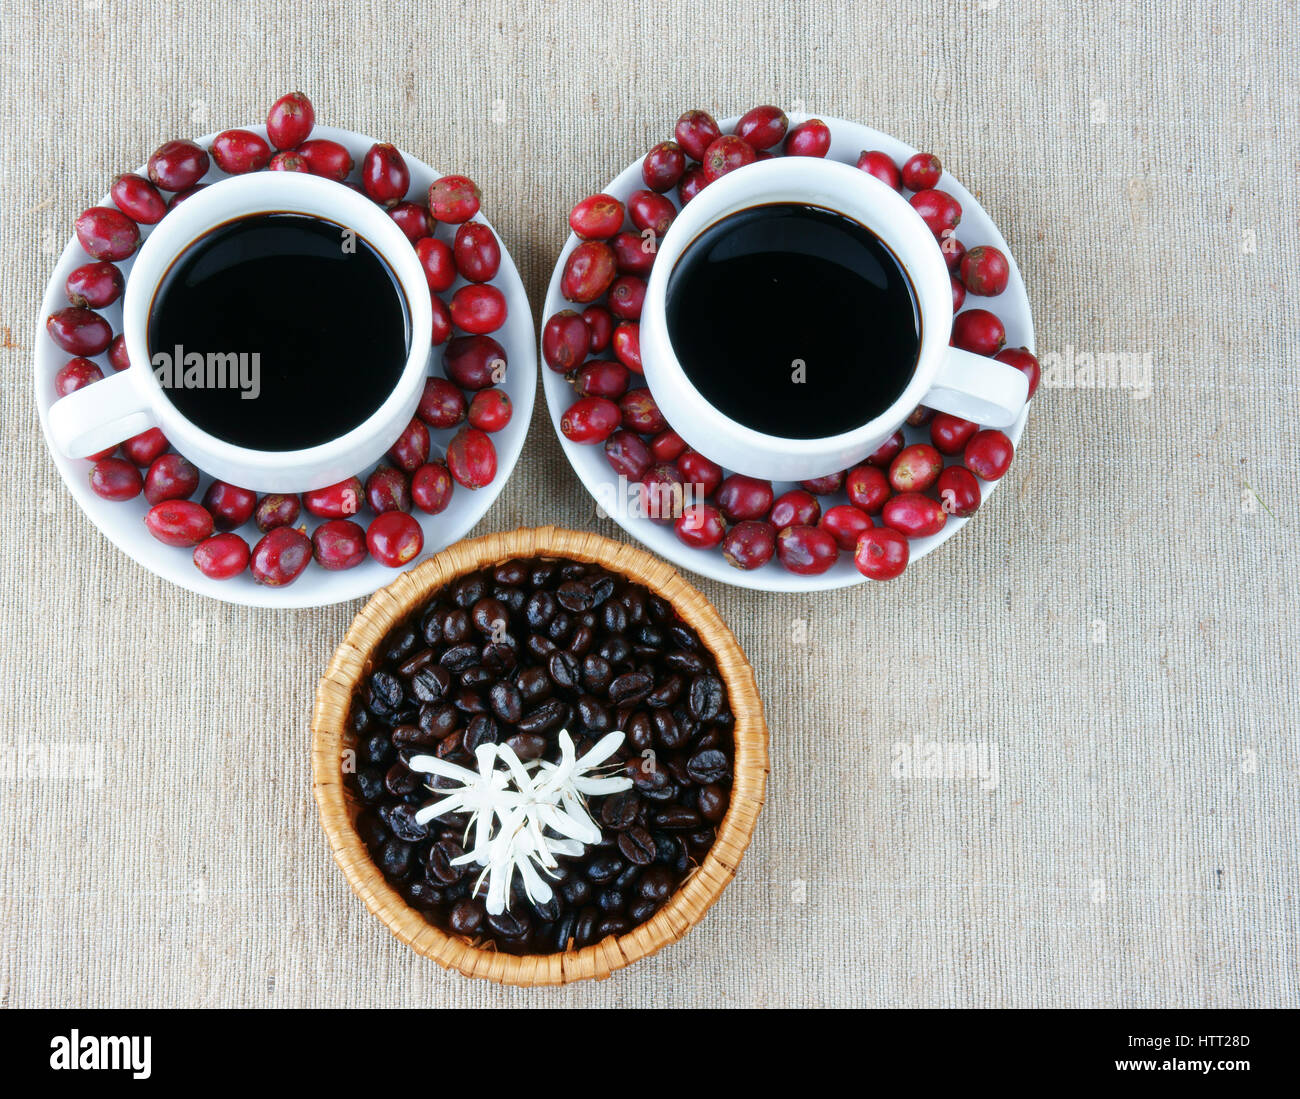 harmony creative for decor from coffee bean cup of black cafe ripe berries - Black Cafe Decor